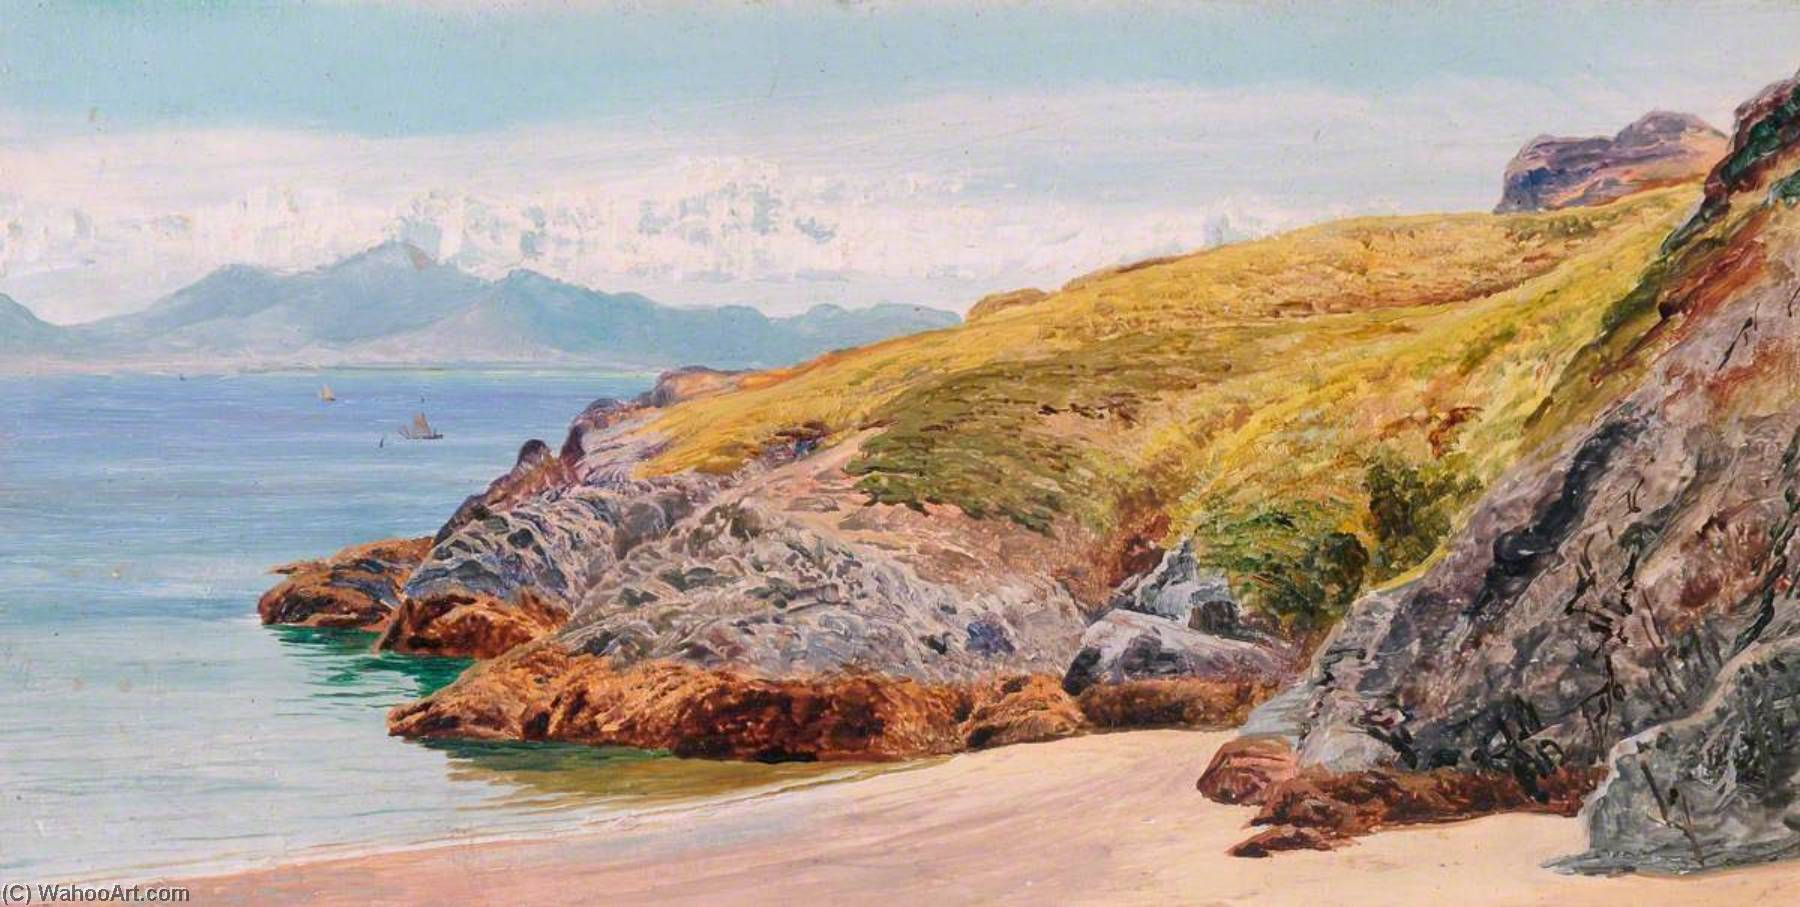 llanddwyn ii, 1885 de Frederick William Hayes | Reproductions D'art De Musée Frederick William Hayes | WahooArt.com